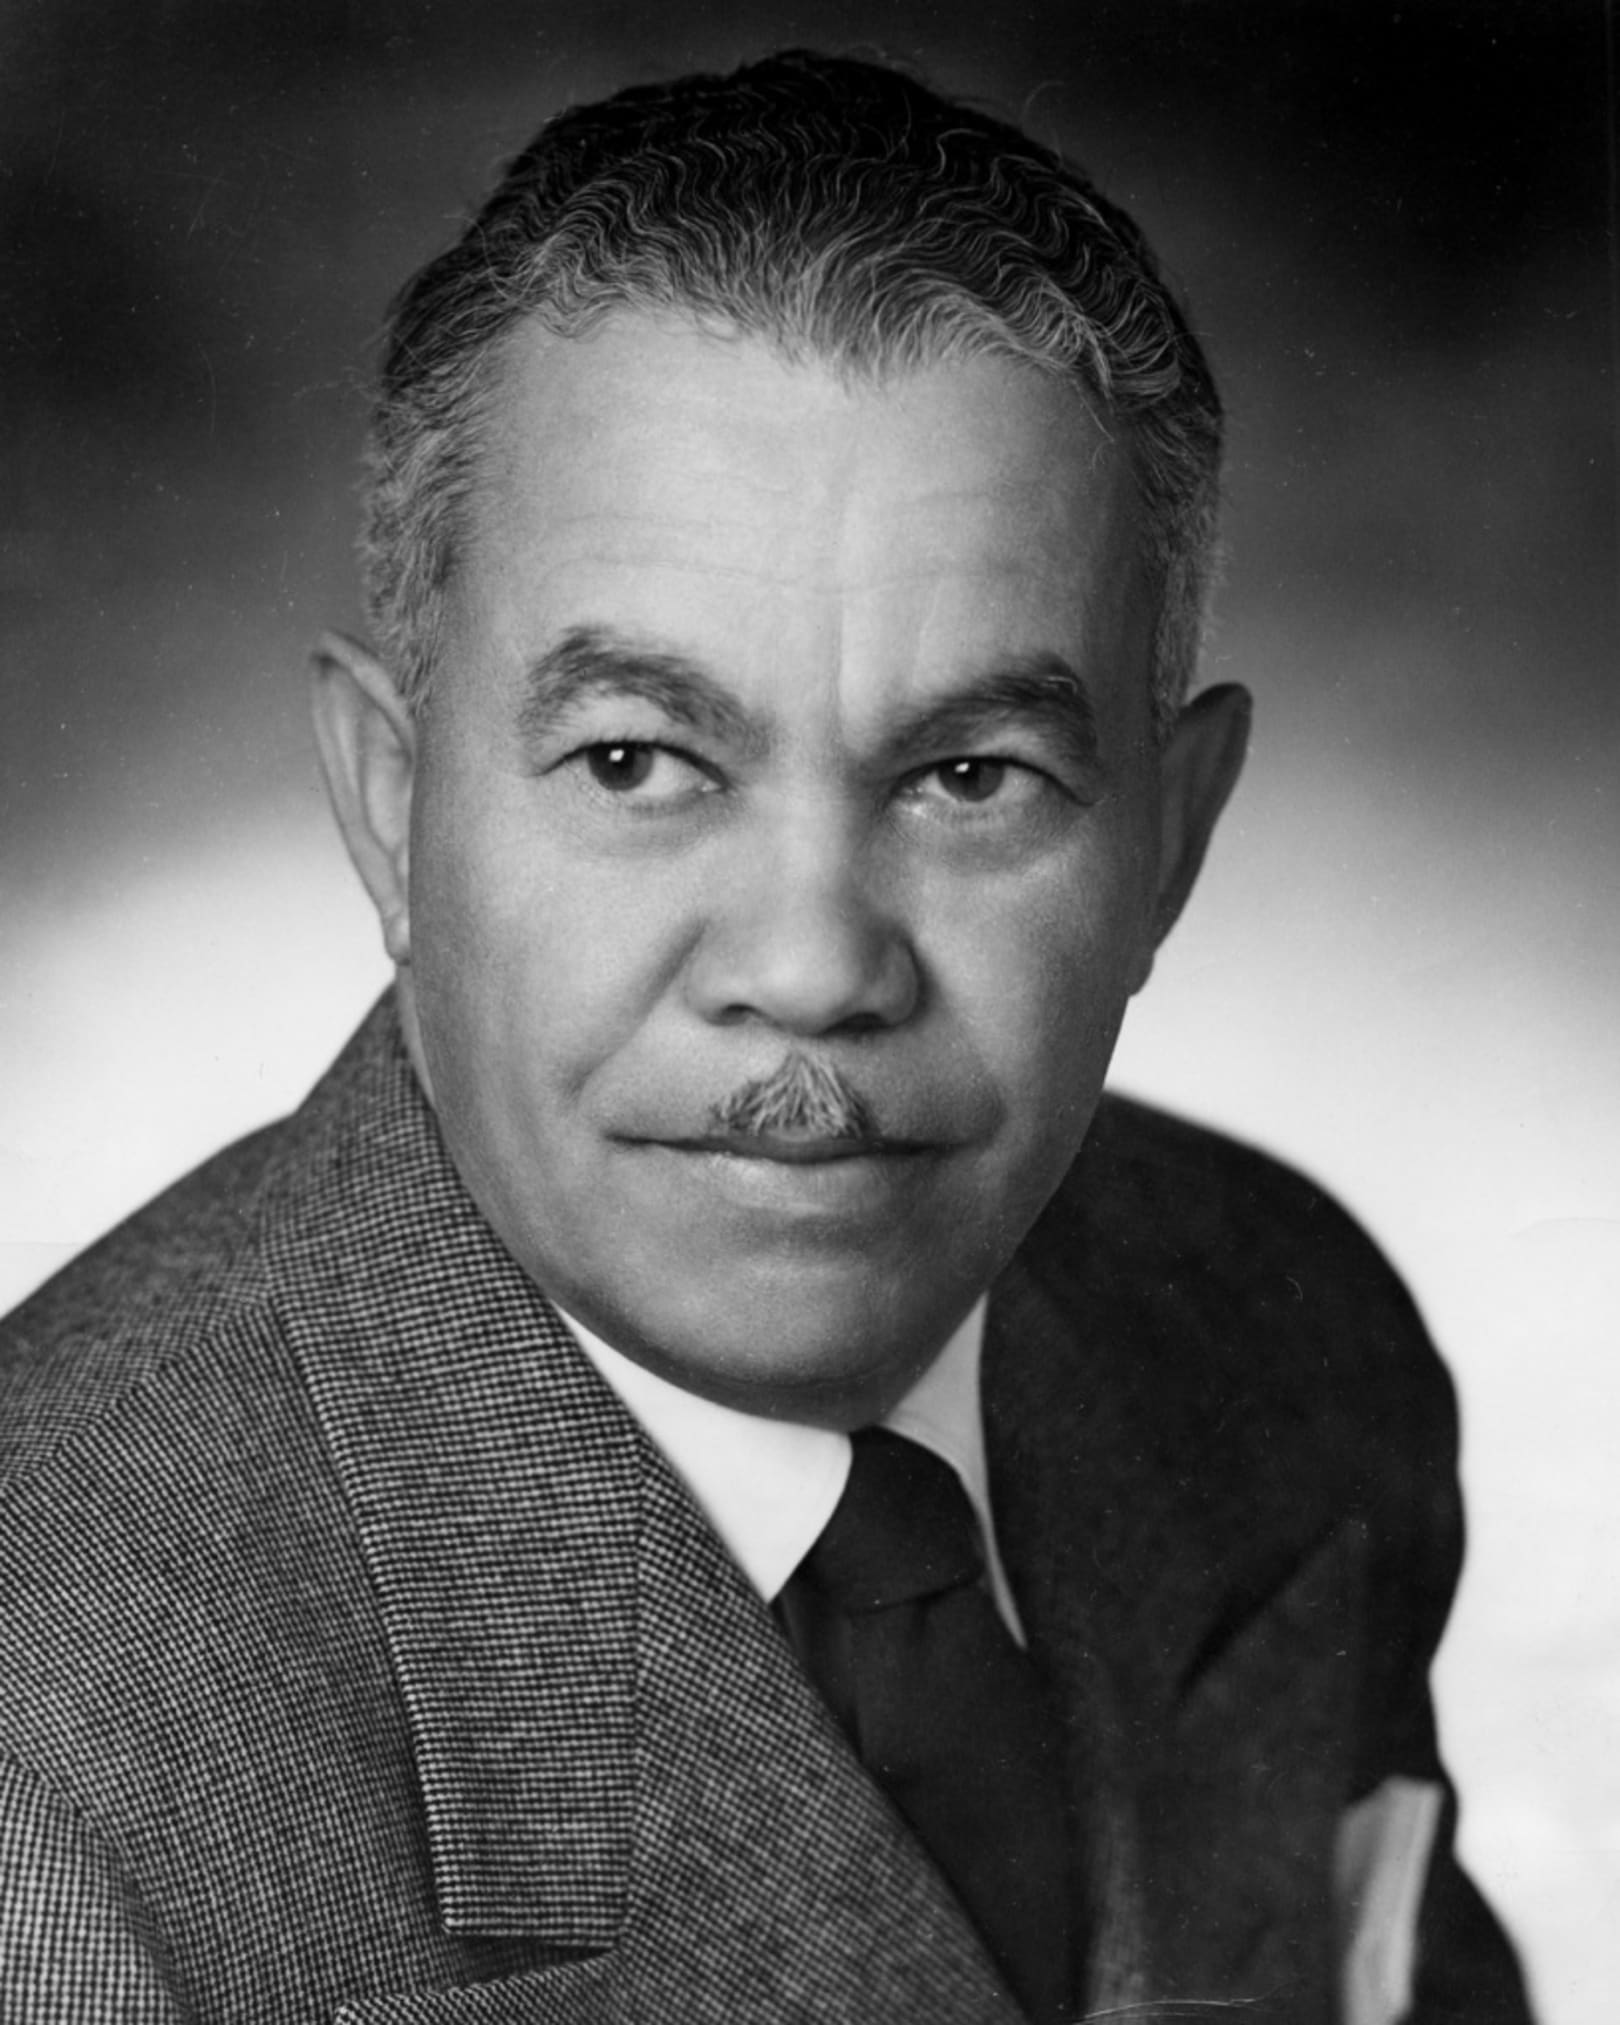 paul revere williams faia paul revere williams faia